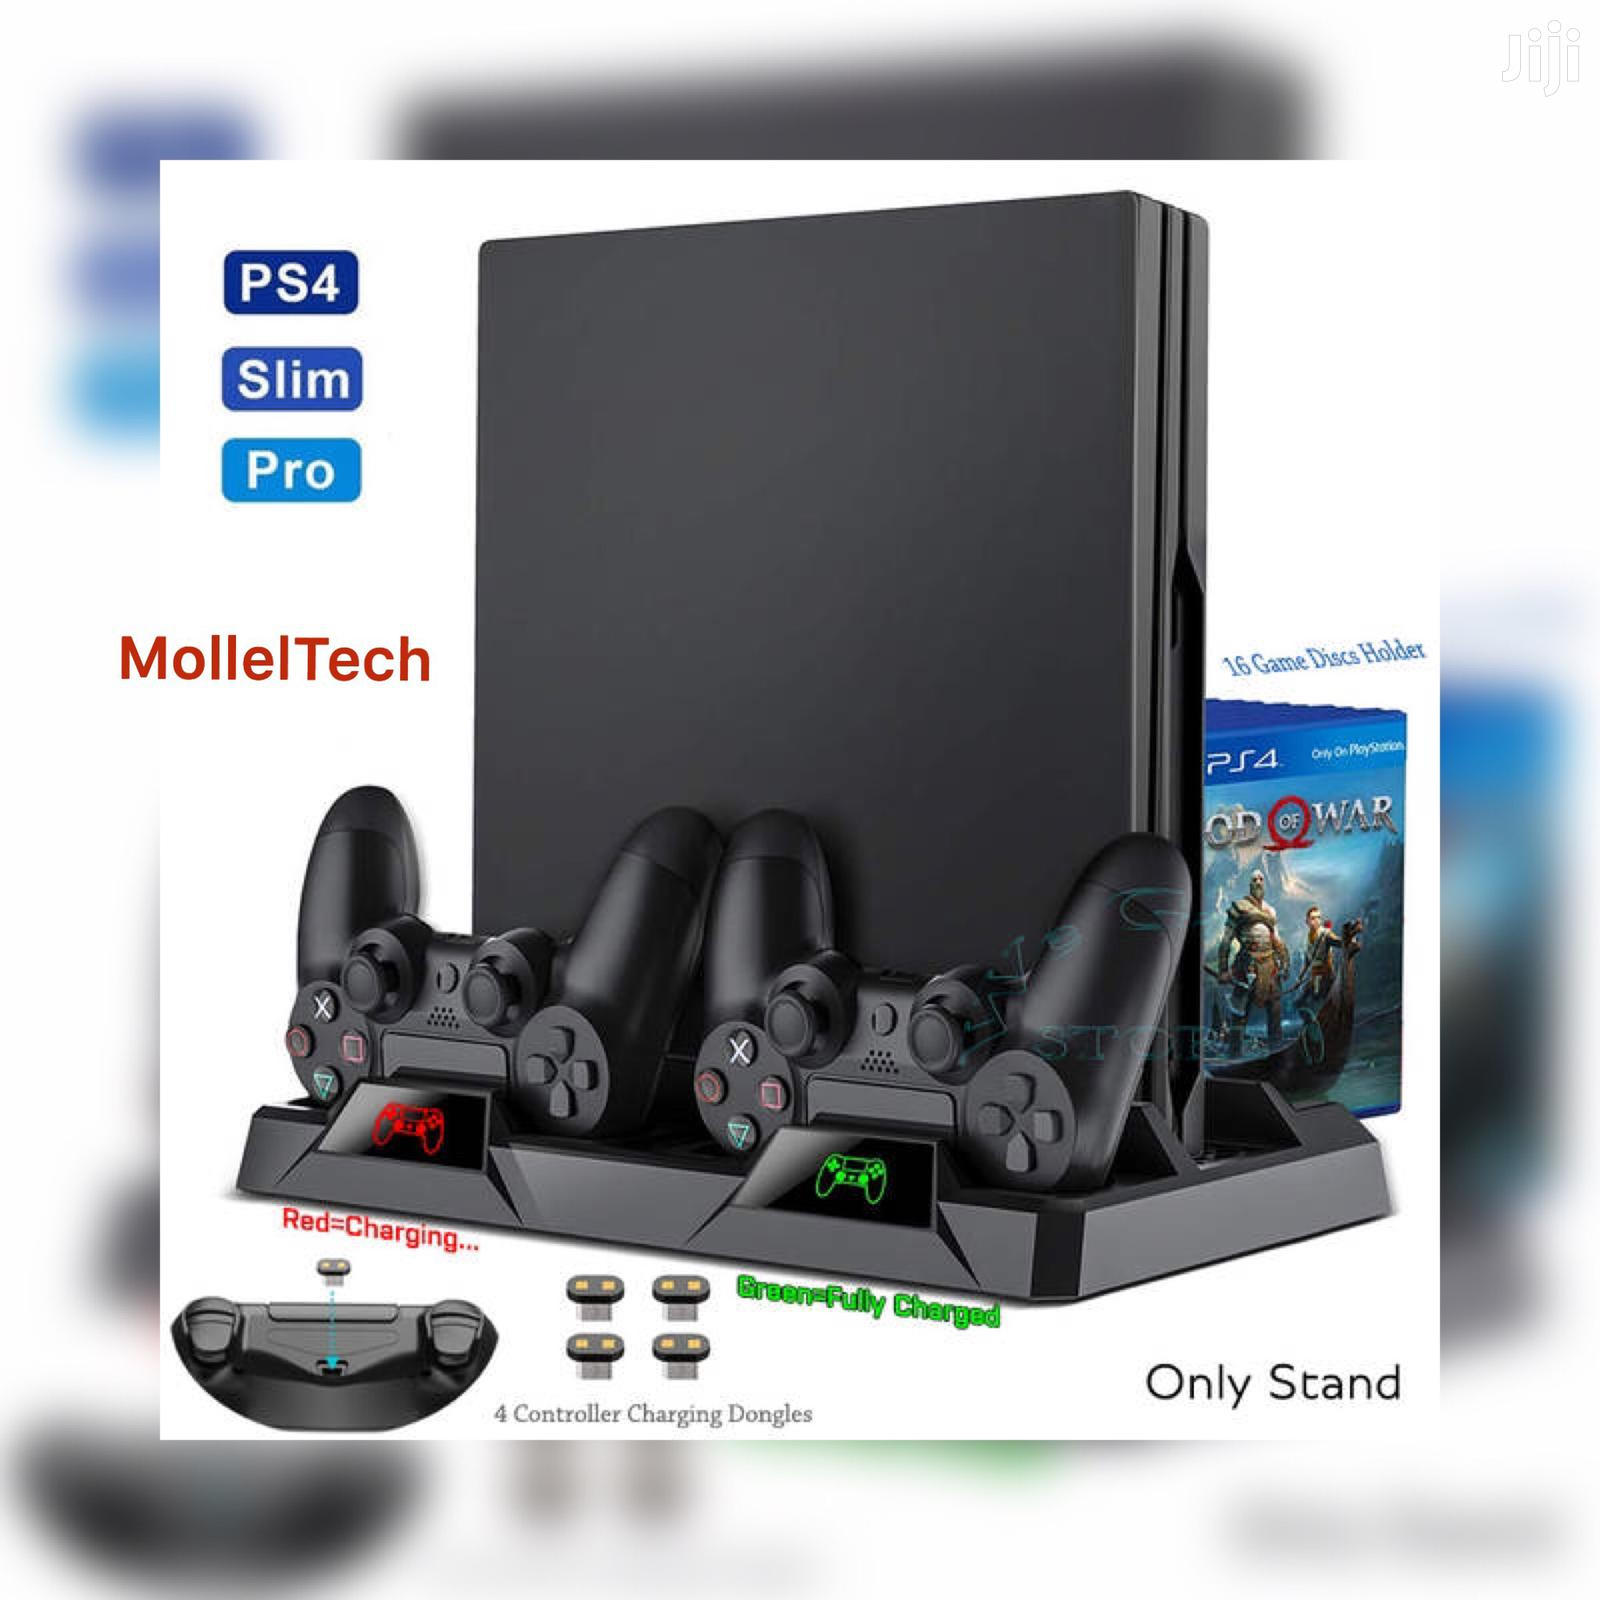 Ps4 Game Console For Sale In A New Condition